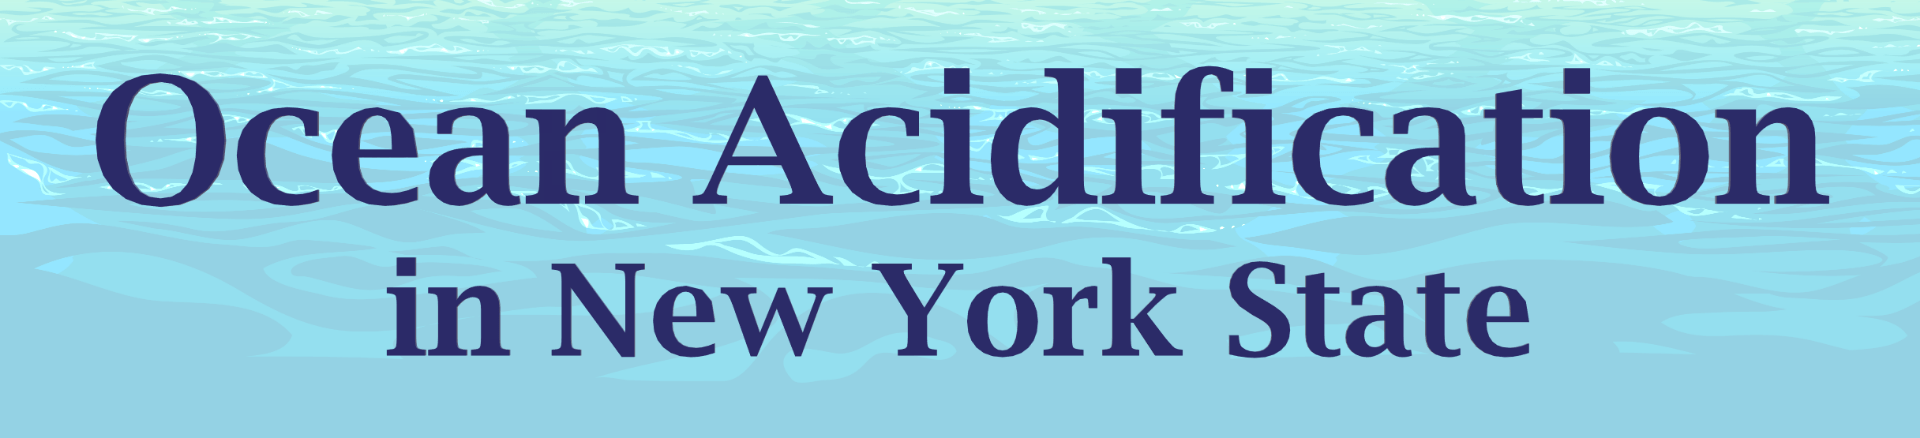 Ocean Acidification in New York State